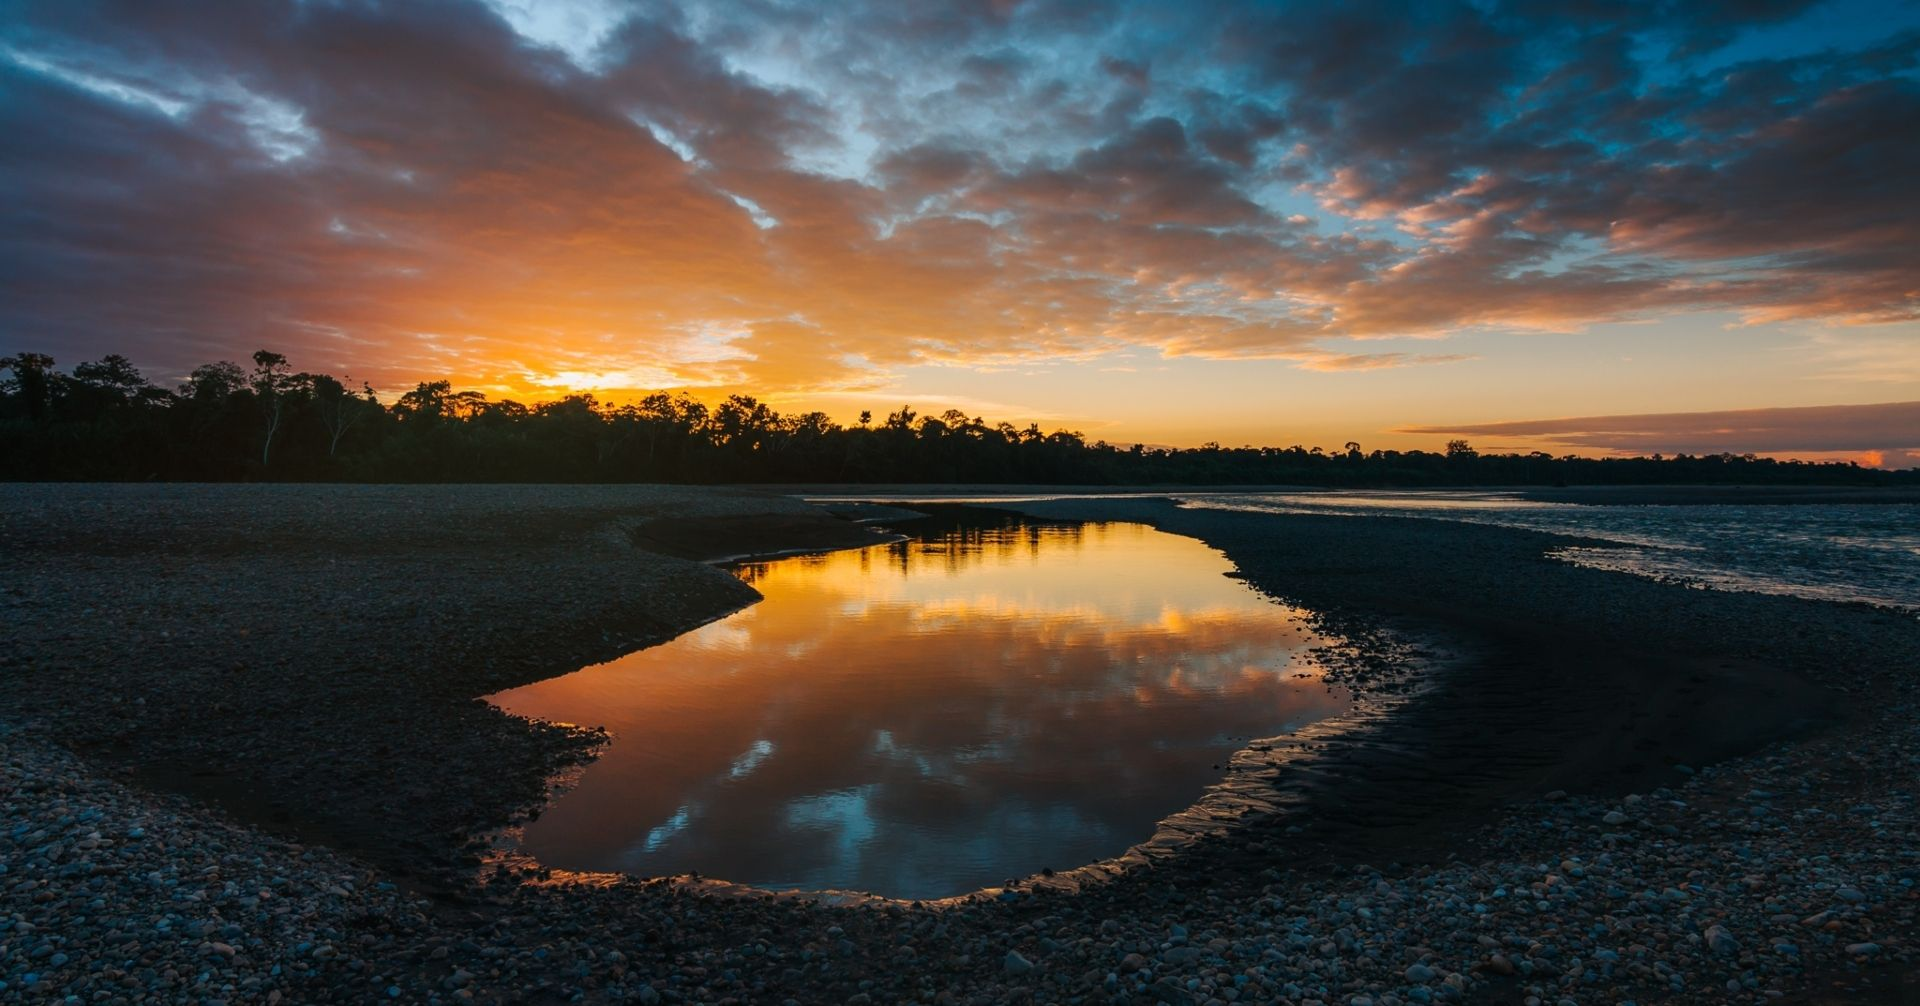 Amazon sunset in the river (Photo Credit: Alexis Huertas)